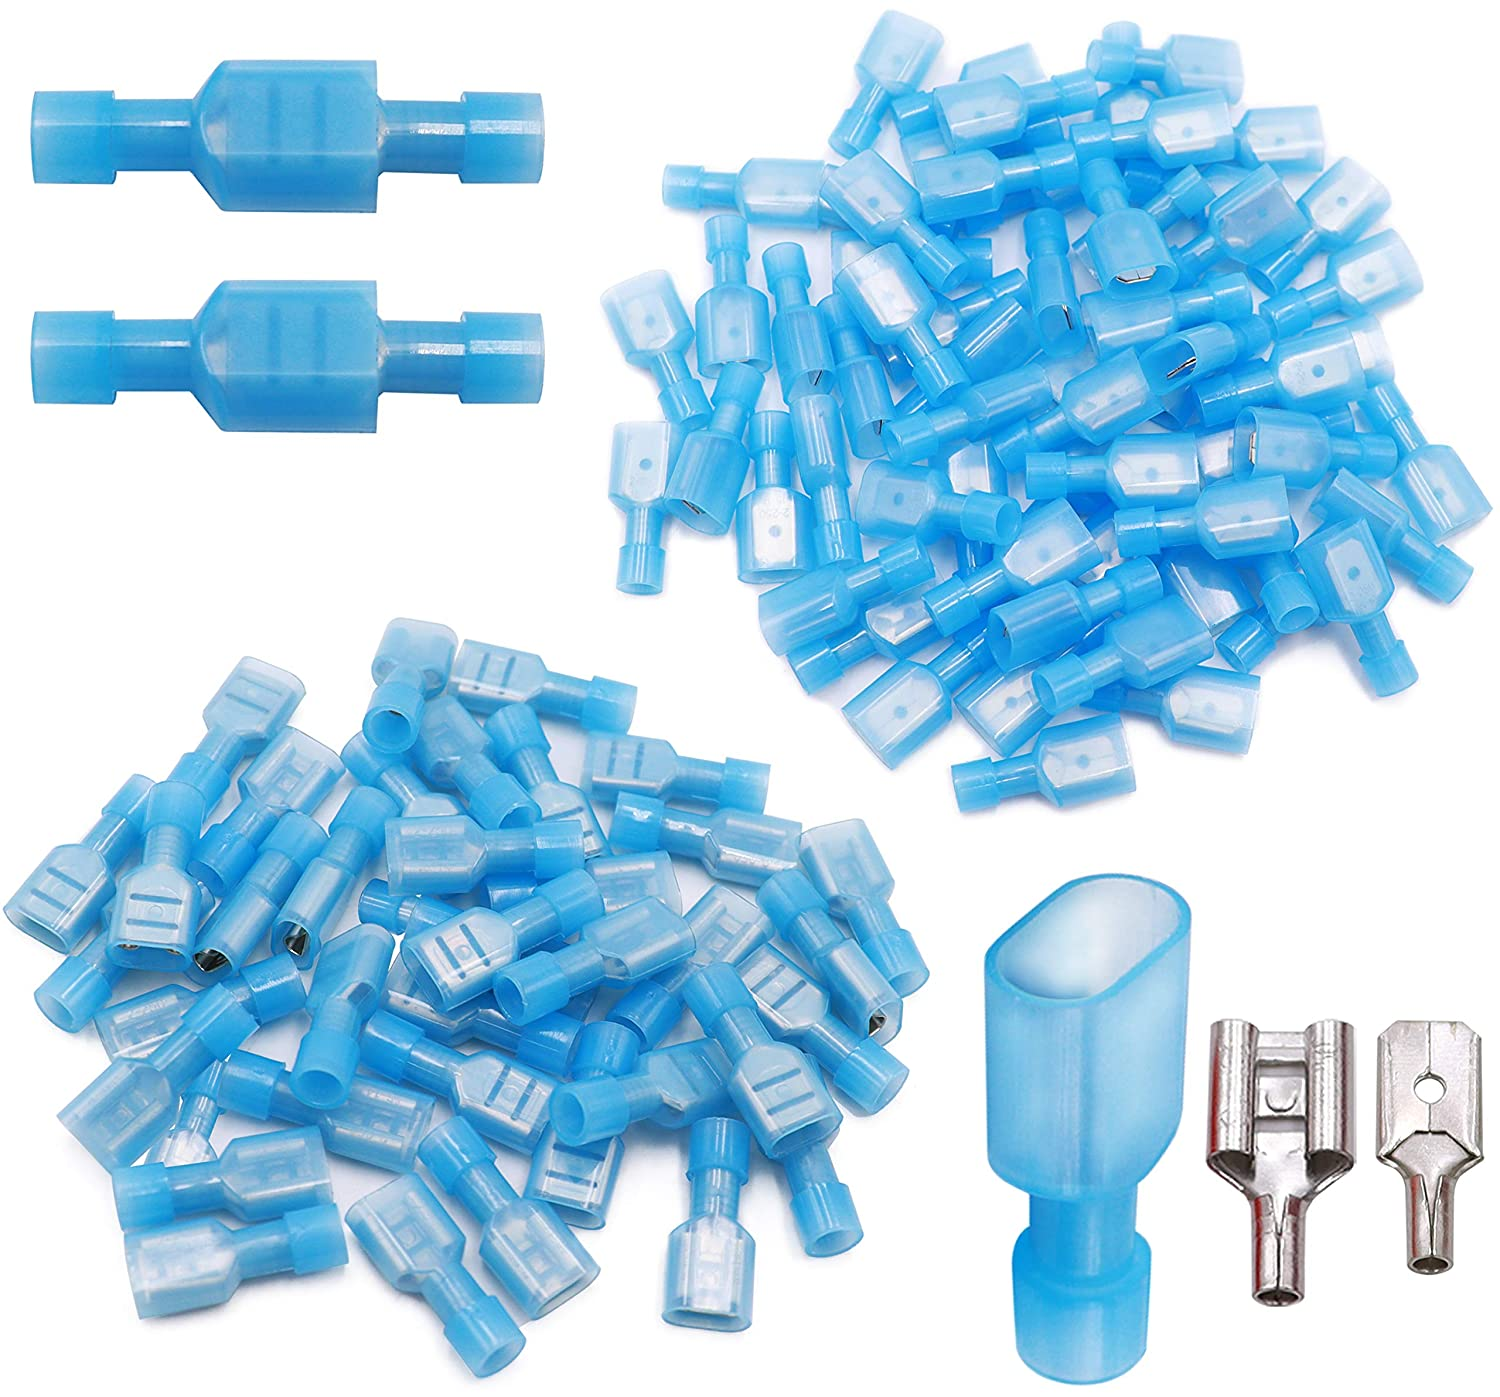 Tnisesm 120Pcs Female Spade Wire Connectors, Blue 16-14AWG Fully Insulated Nylon Quick Disconnect Electrica Crimp Cold-Pressed Terminal Connectors FDFN2-250-B